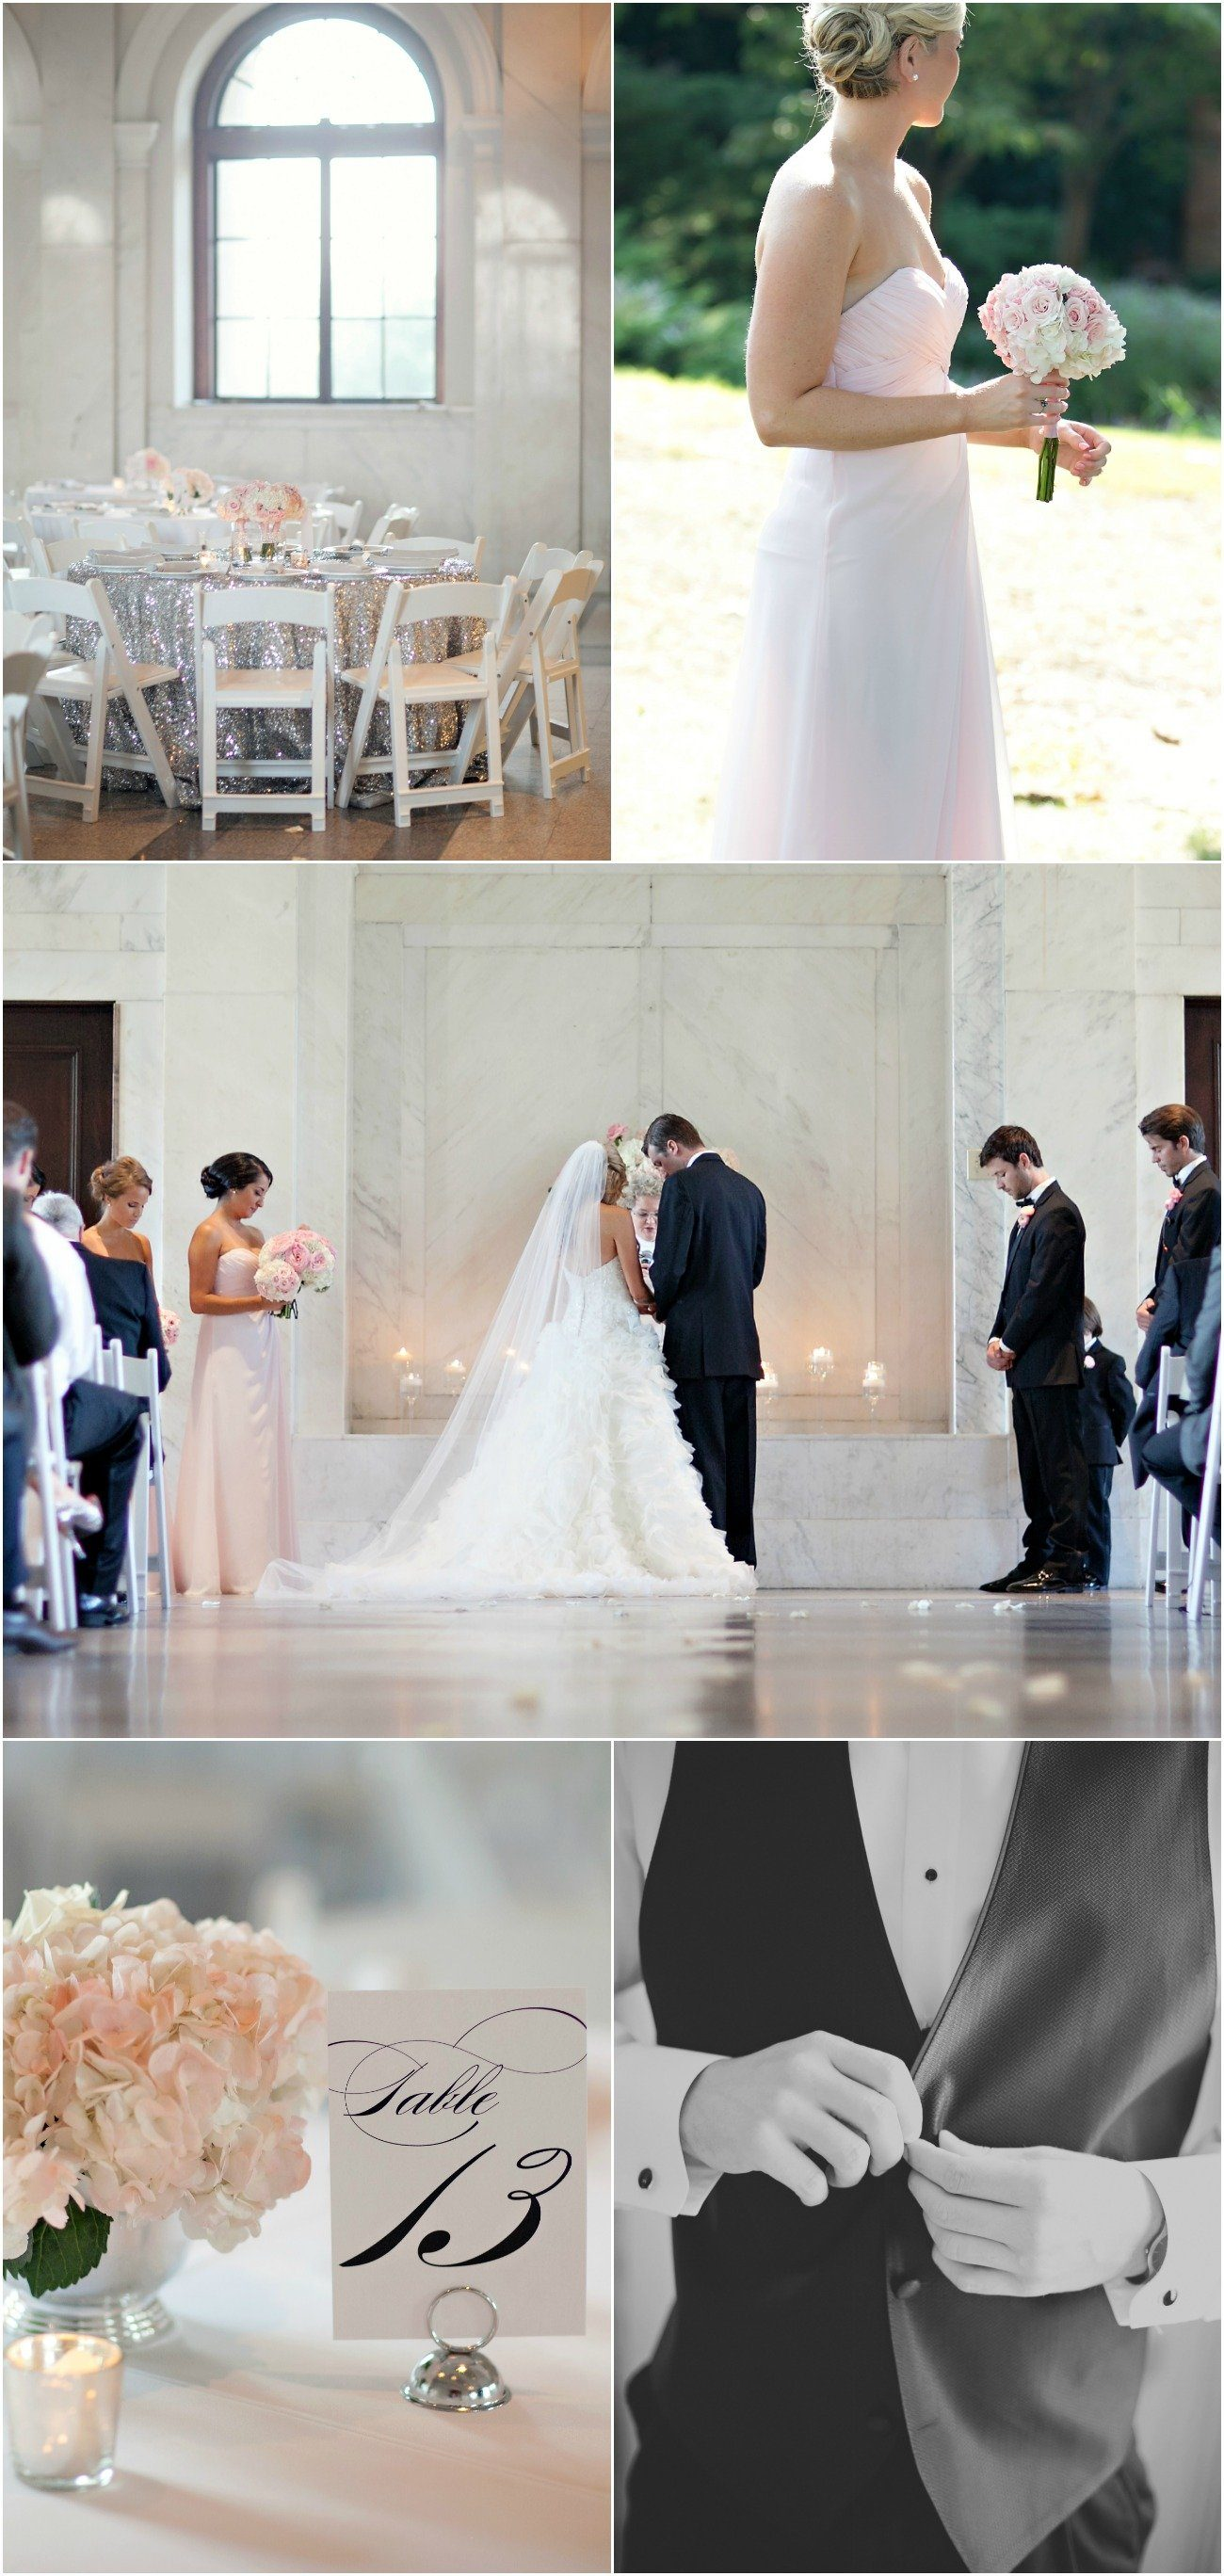 Marie + Jason - Glam Pink and Silver Real Wedding